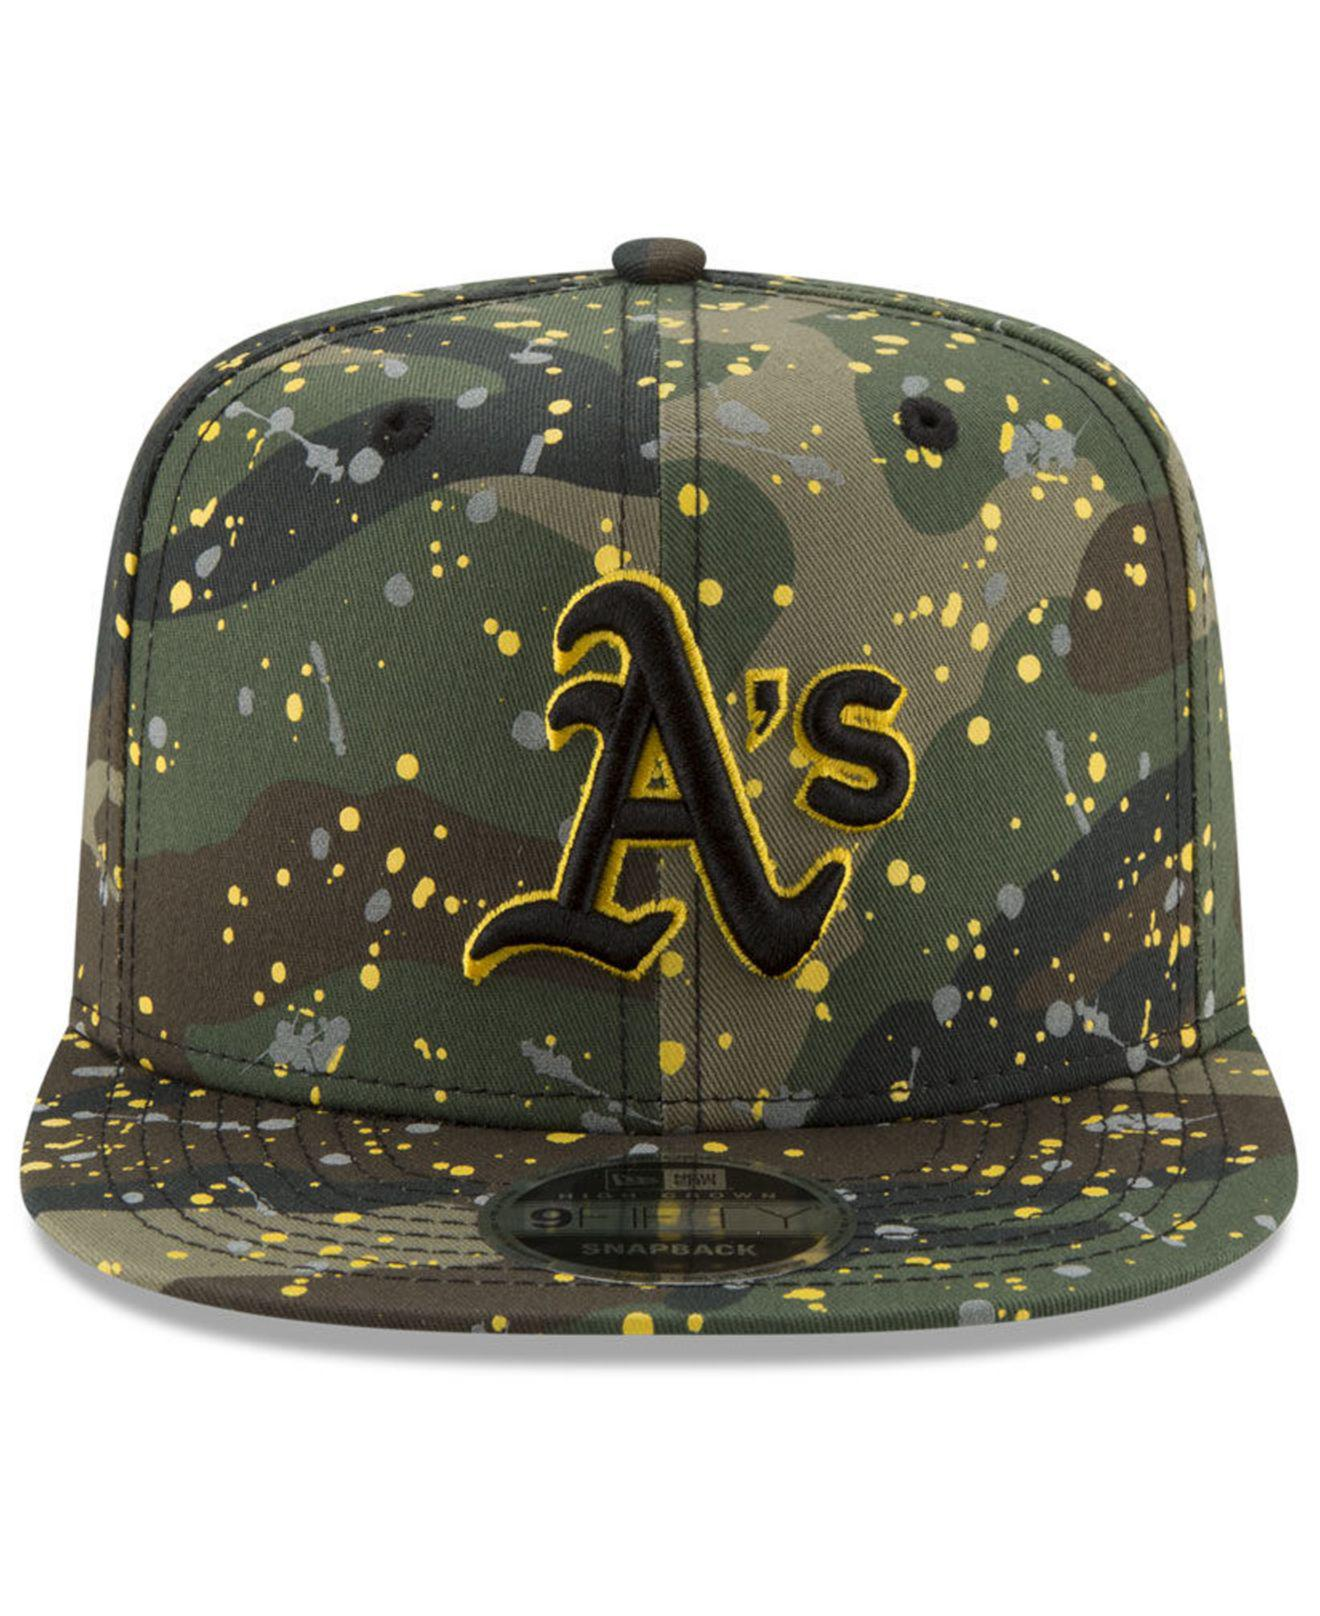 online retailer 109fe ac0b7 france oakland athletics new era mlb gold snake 9fifty snapback cap lids  dbdb7 f67ed  shop lyst ktz oakland athletics camo spec 9fifty snapback cap  in green ...